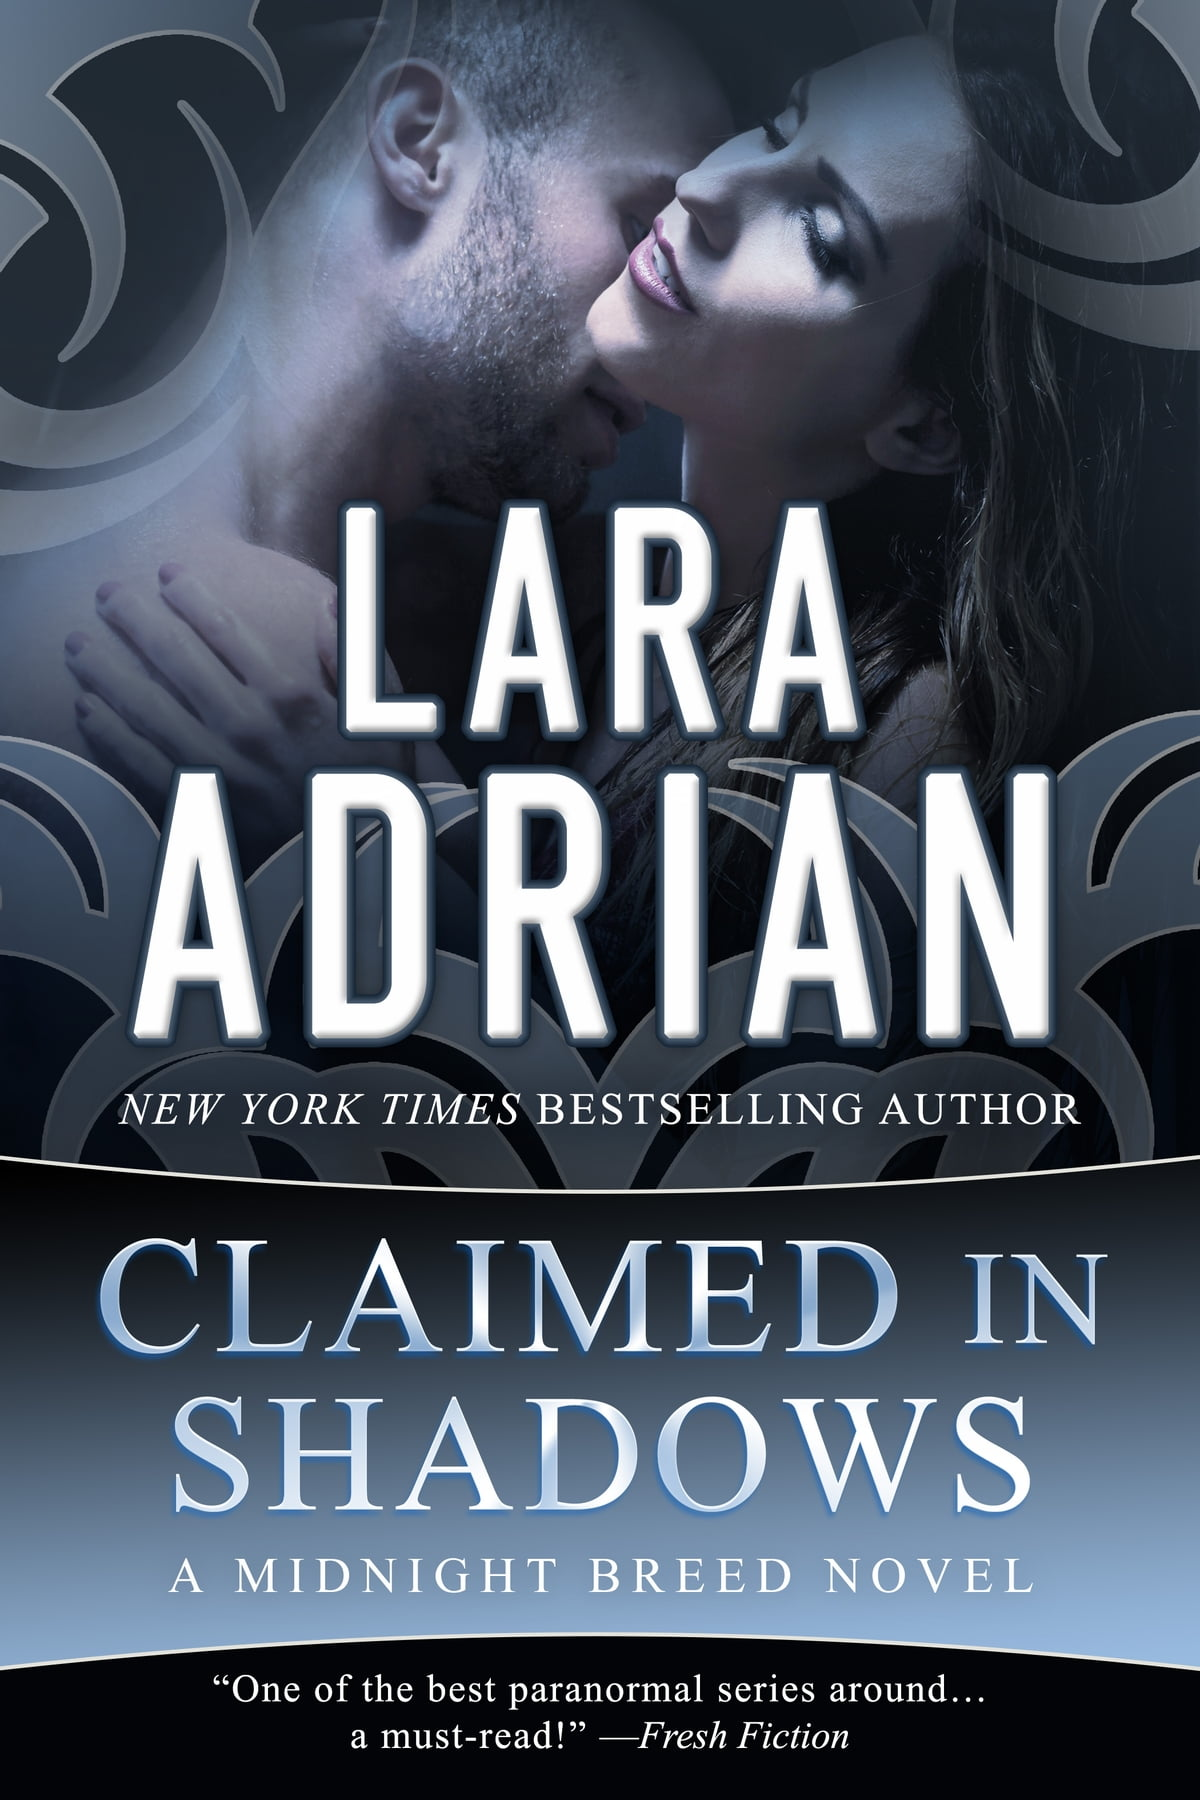 Kobo ebooks audiobooks ereaders and reading apps claimed in shadows a midnight breed novel ebook by lara adrian fandeluxe Image collections